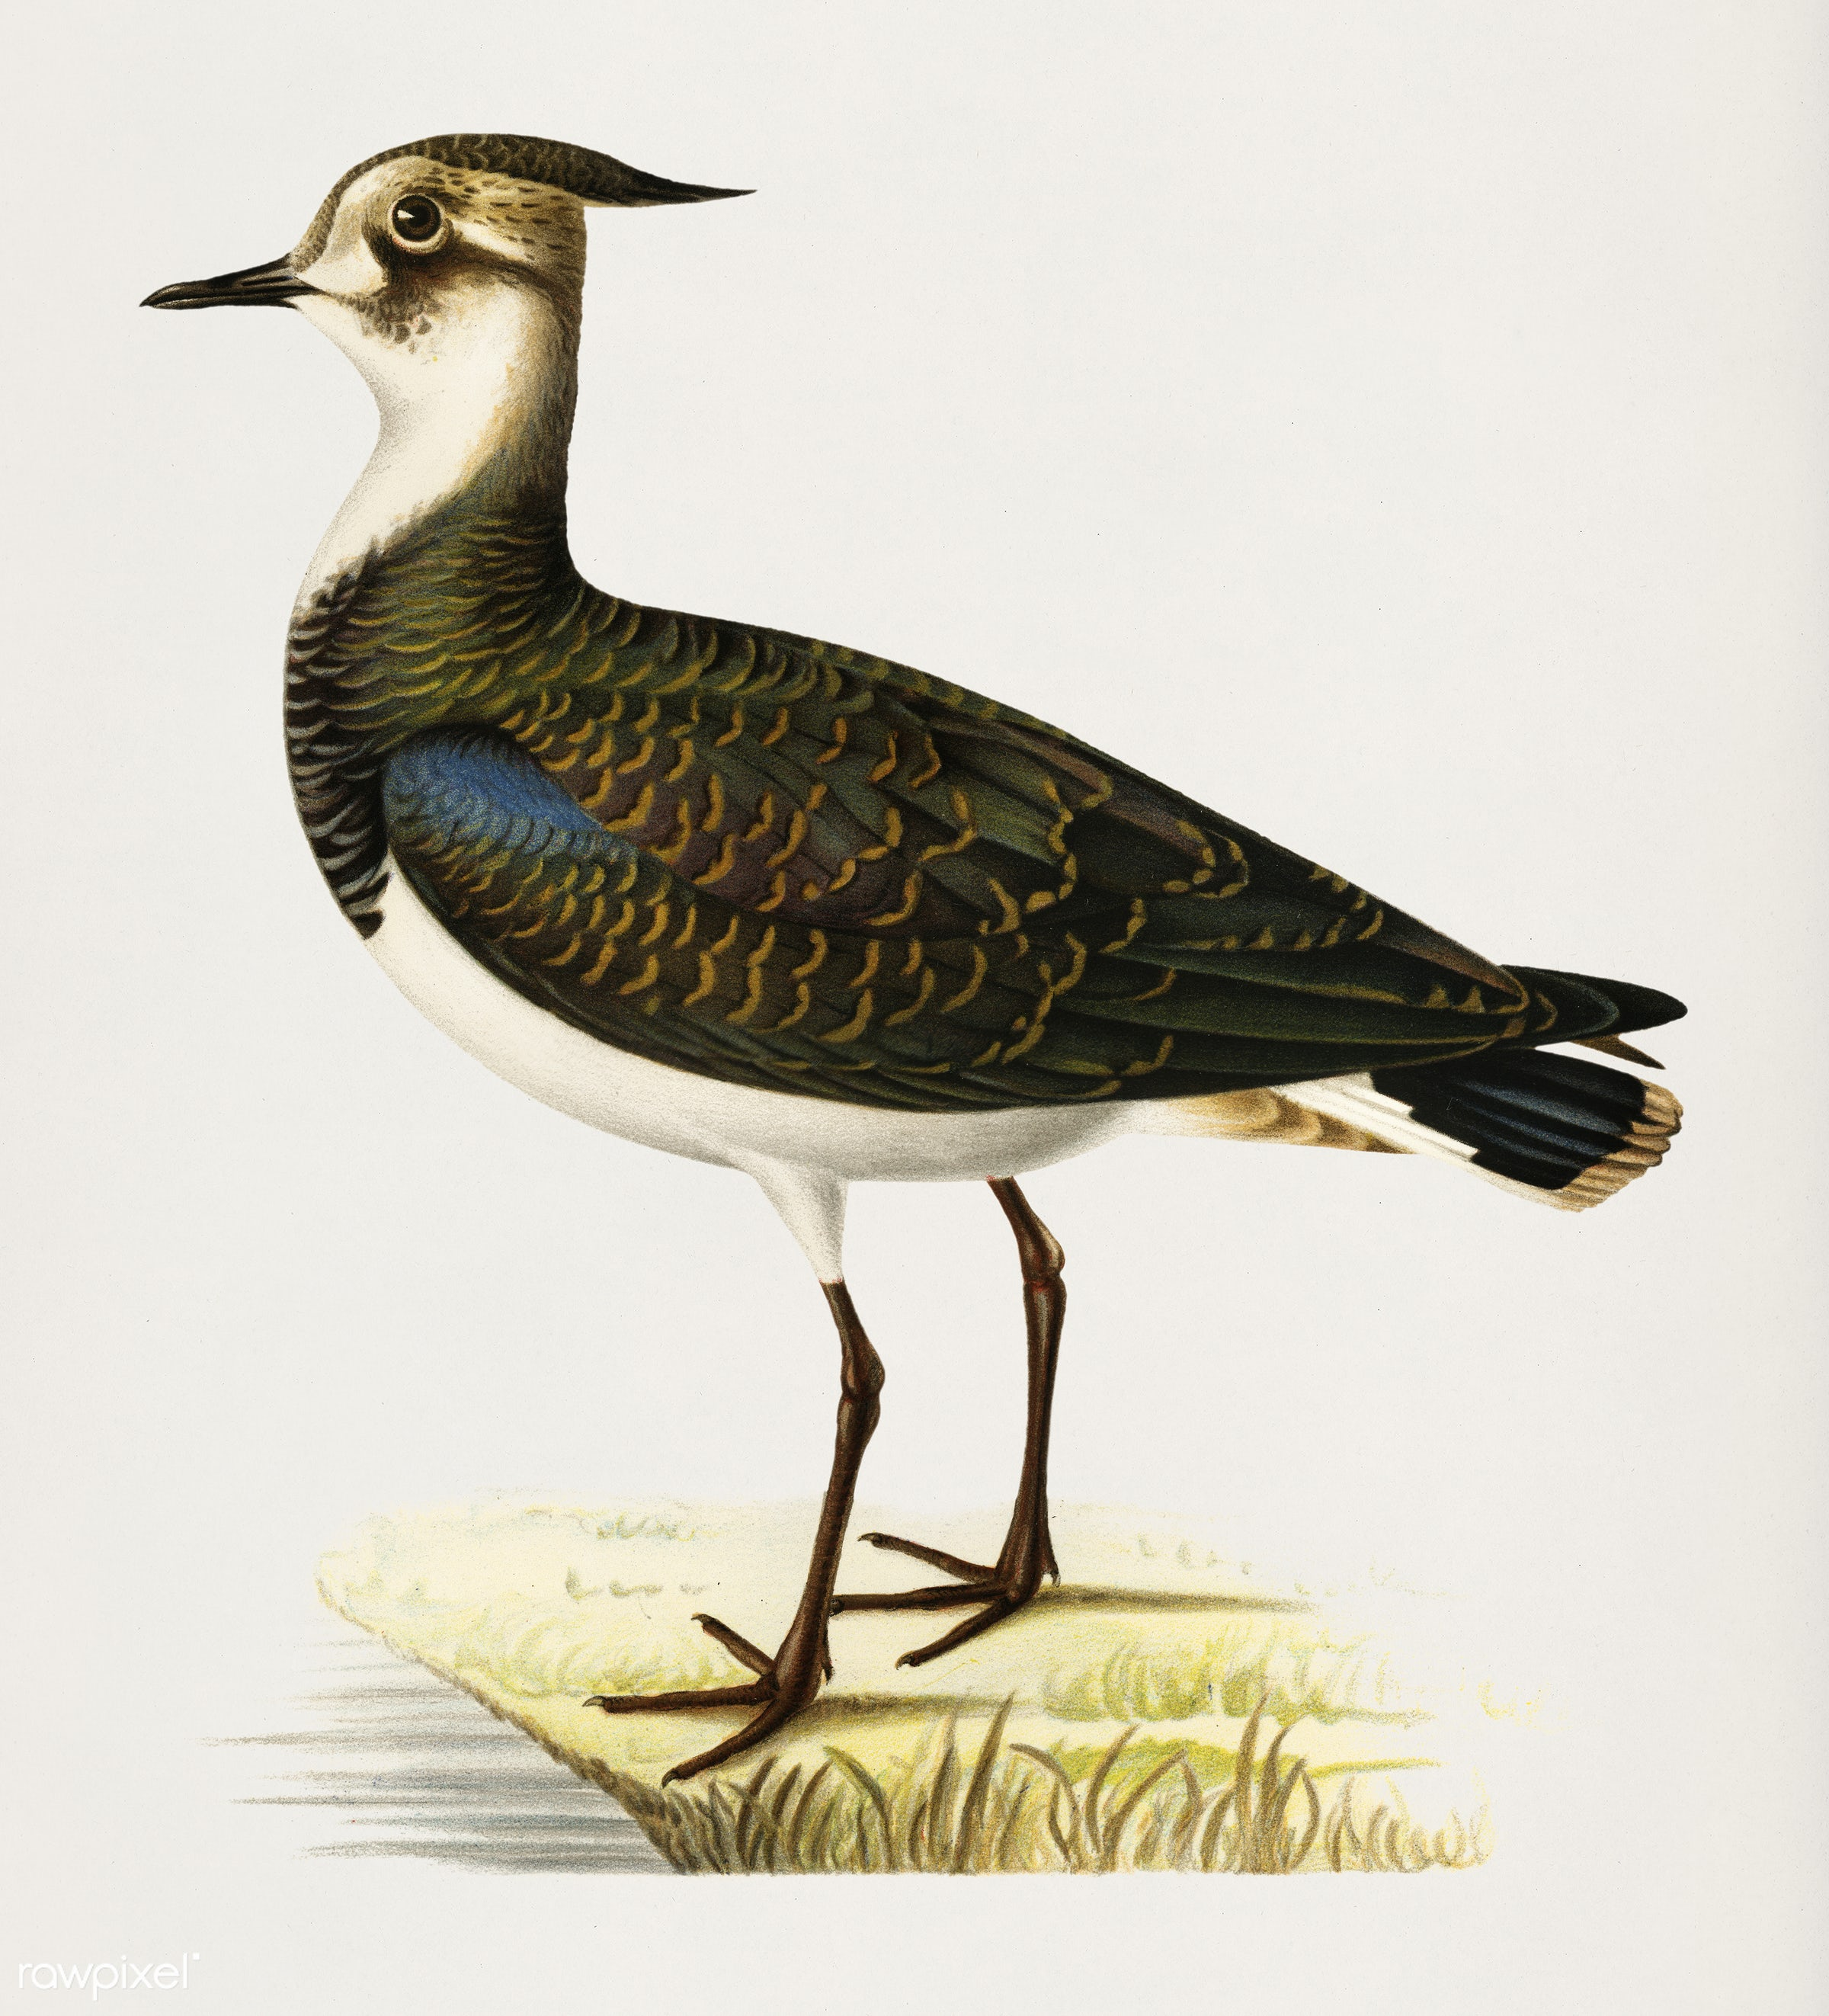 Nortnern lapwing (Vanellus vanellus) illustrated by the von Wright brothers. Digitally enhanced from our own 1929 folio...